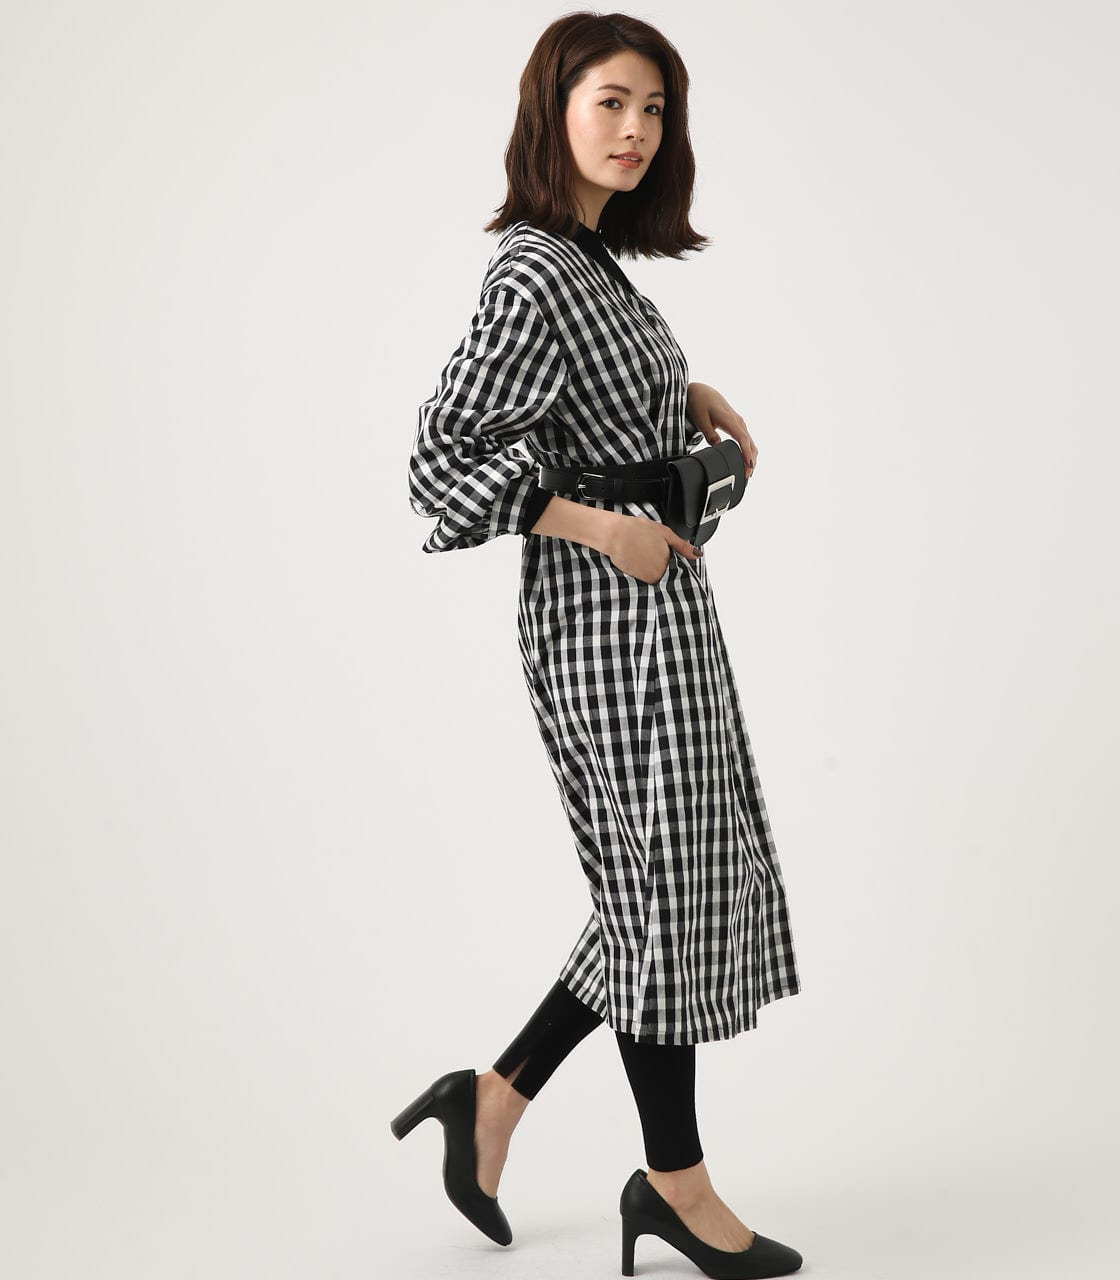 【AZUL BY MOUSSY】VOLUME SLEEVE SFLARE ONEPIECE 詳細画像 柄BLK 2